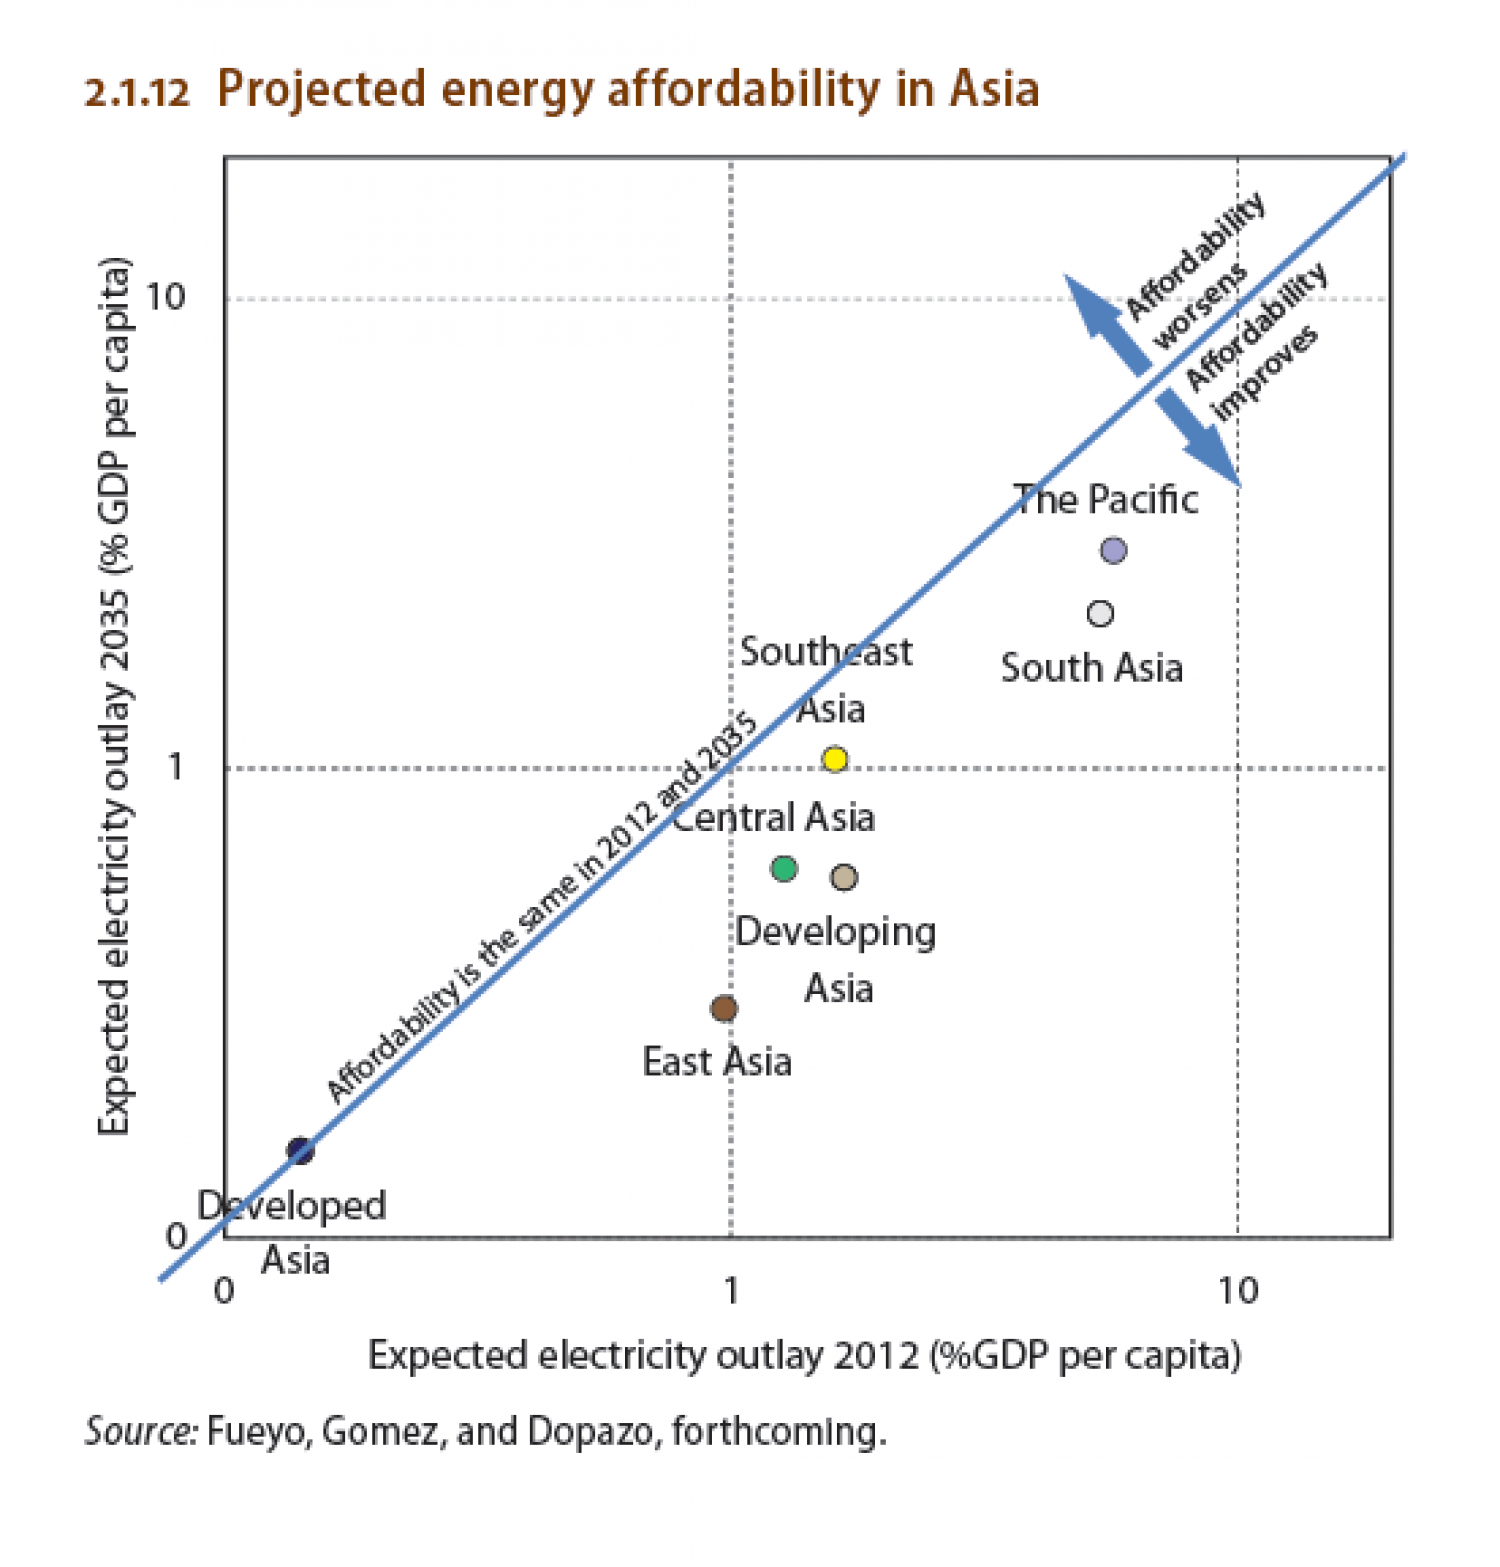 Projected energy affordability in Asia Infographic